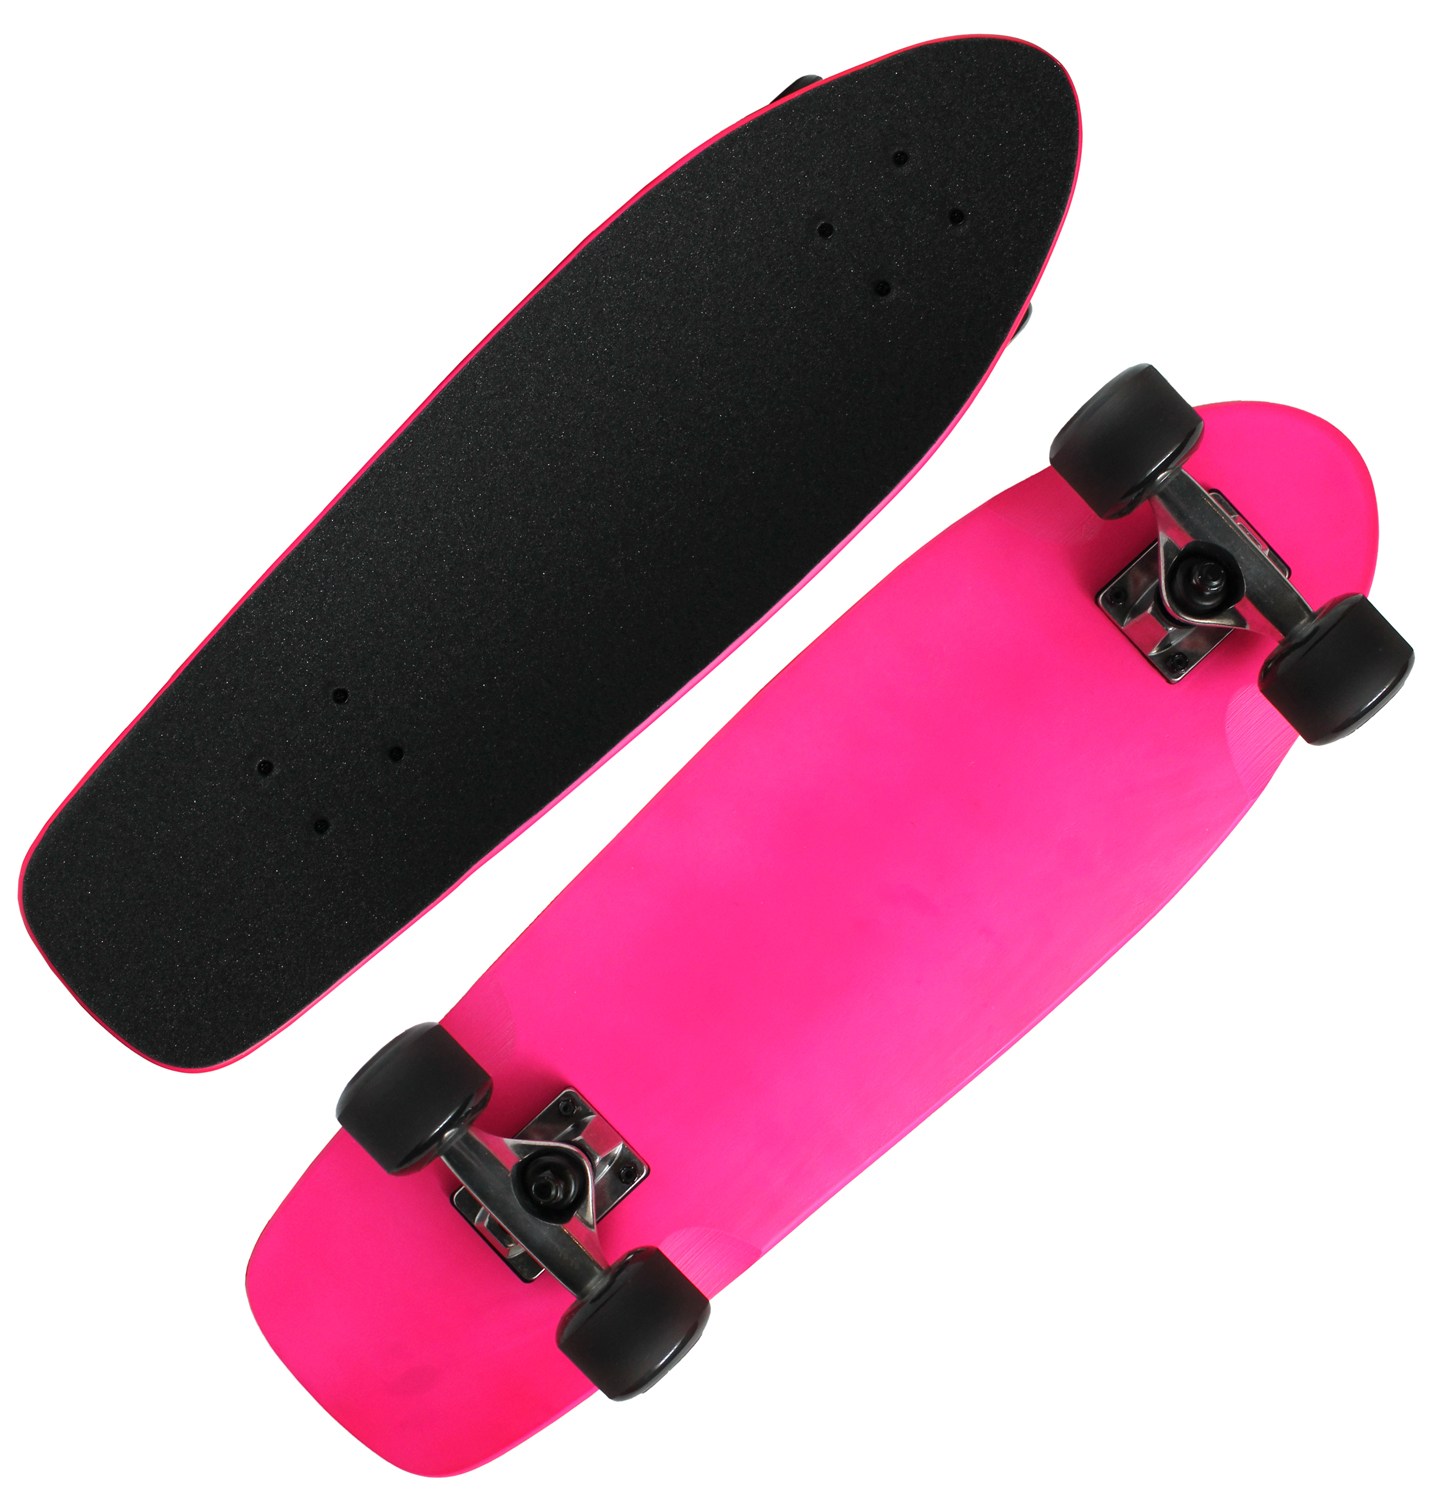 NEON PINK BEACH CRUISER SKATEBOARD COMPLETE Kicktail Mini Shape MAPLE 8 x 26.5